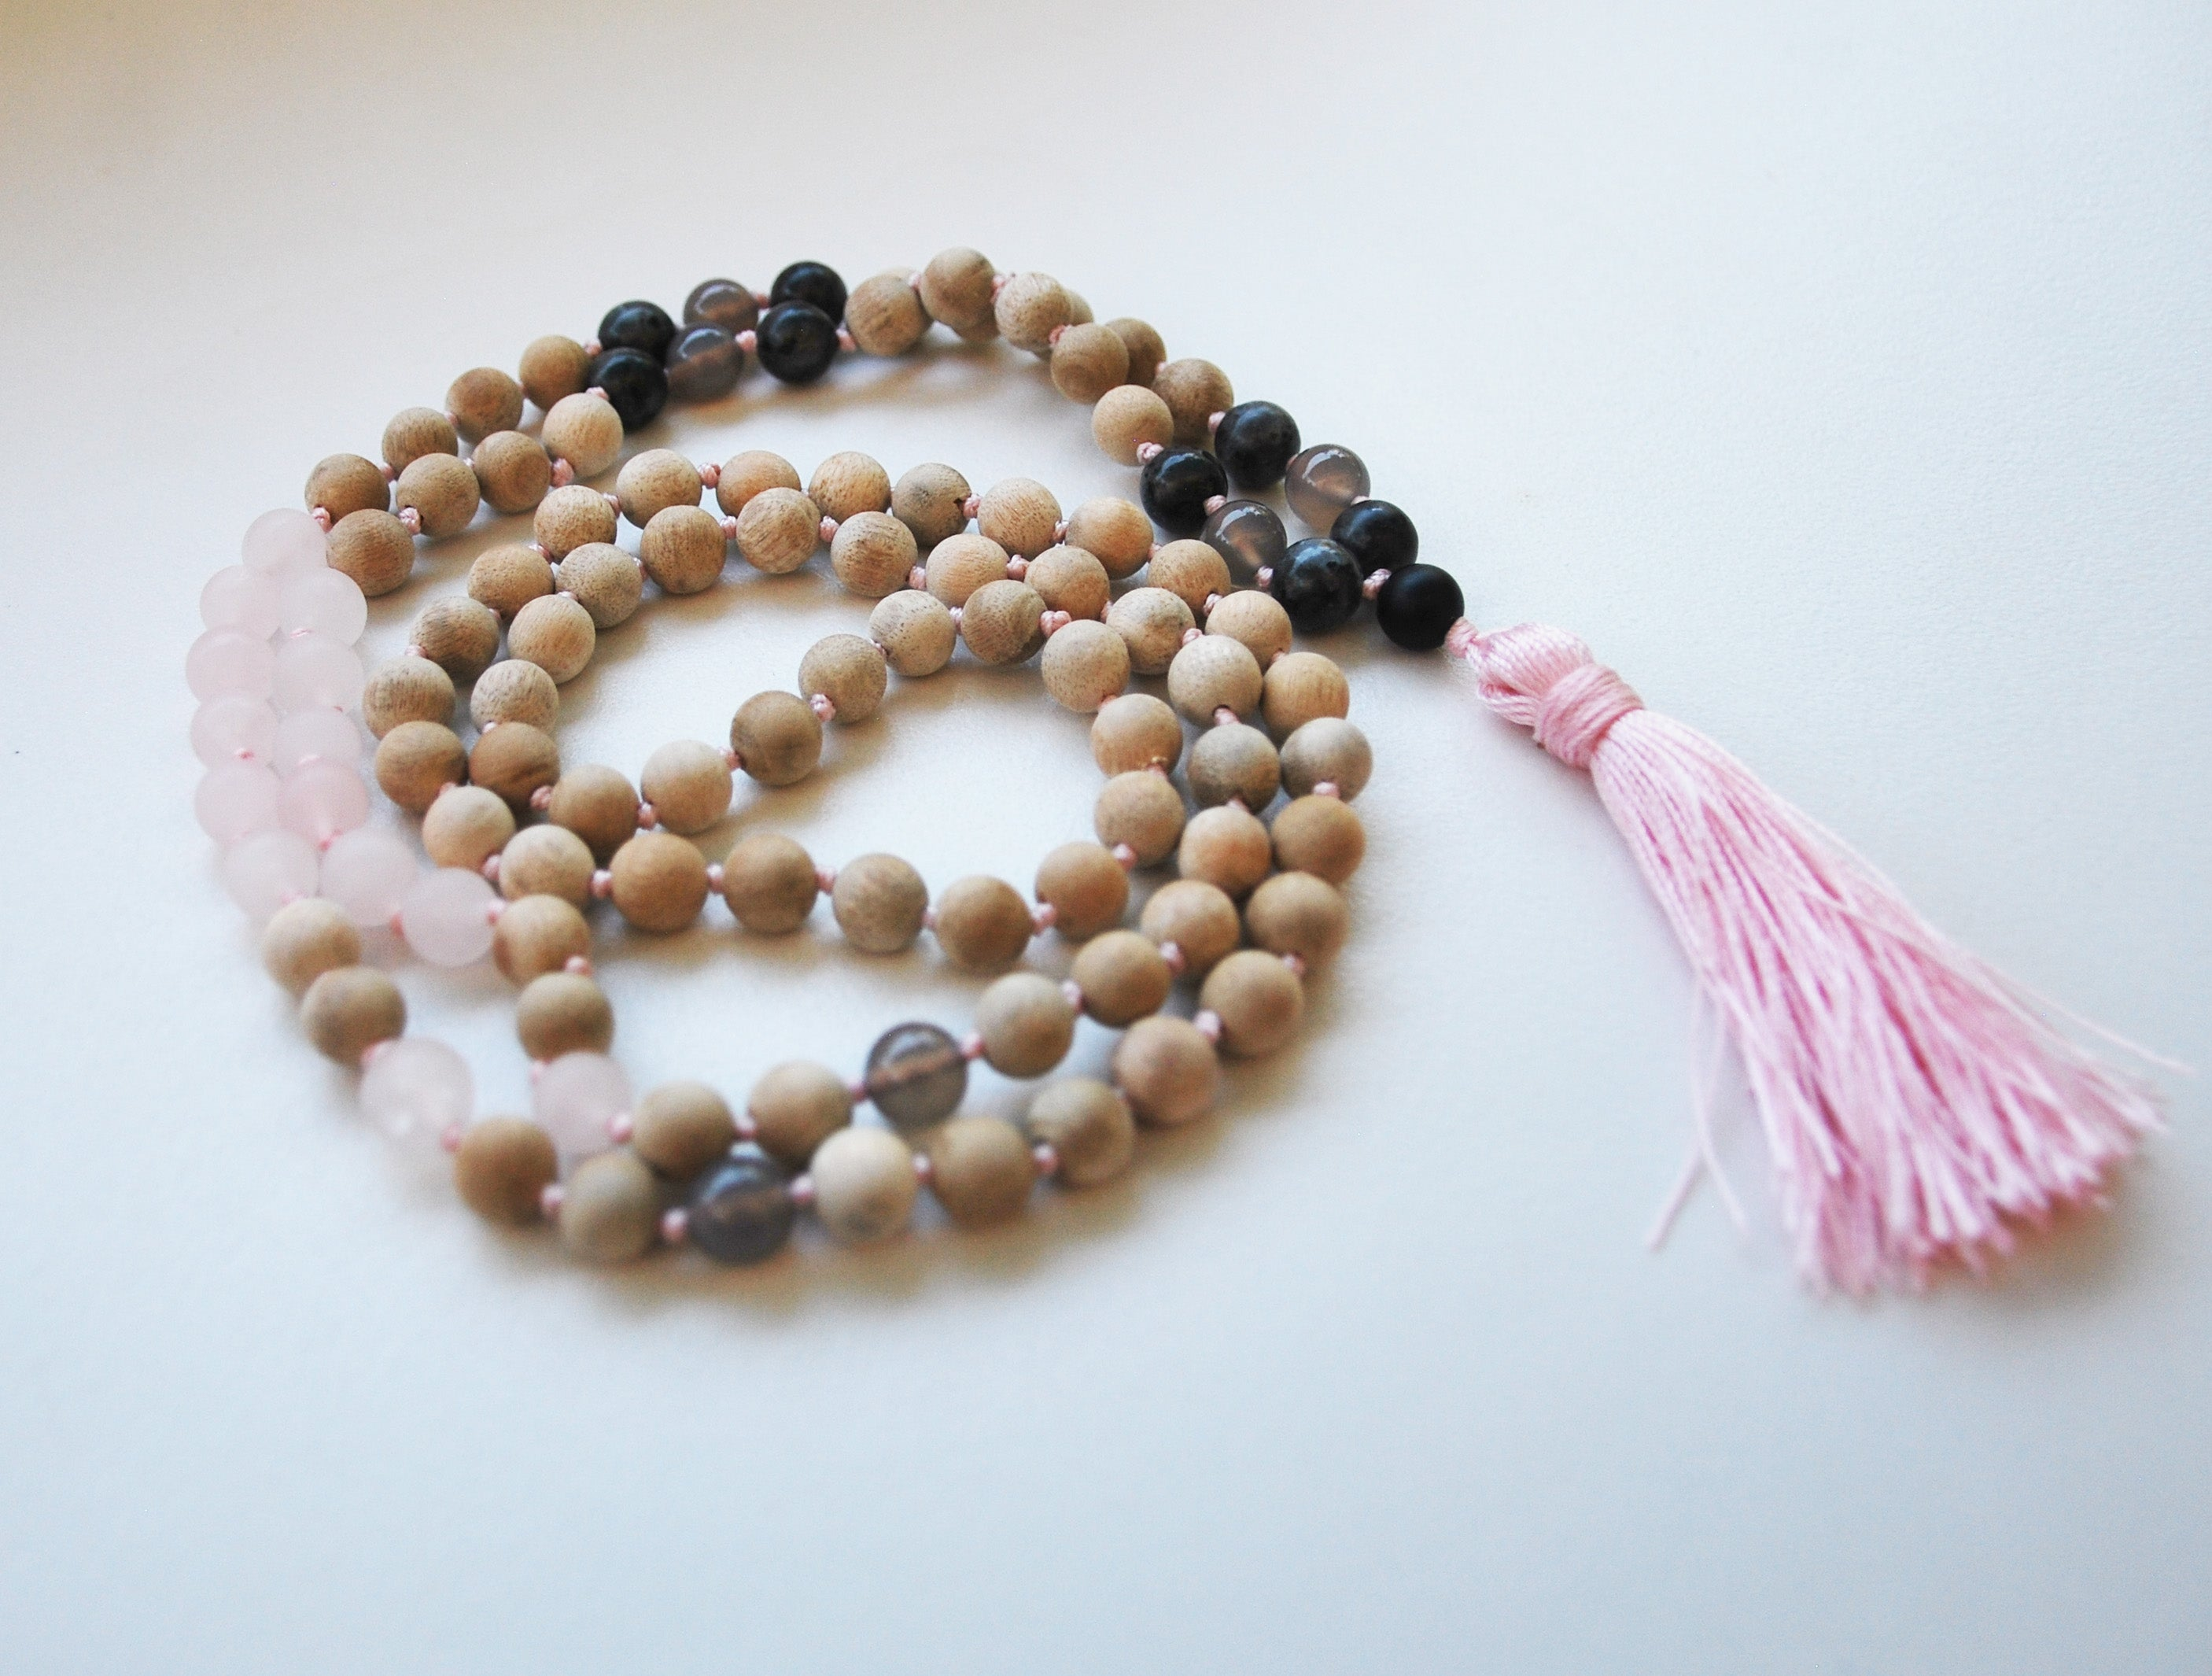 8mm Sandalwood & Rose Quartz  108 Knotted Mala Necklace with Colored Tassel